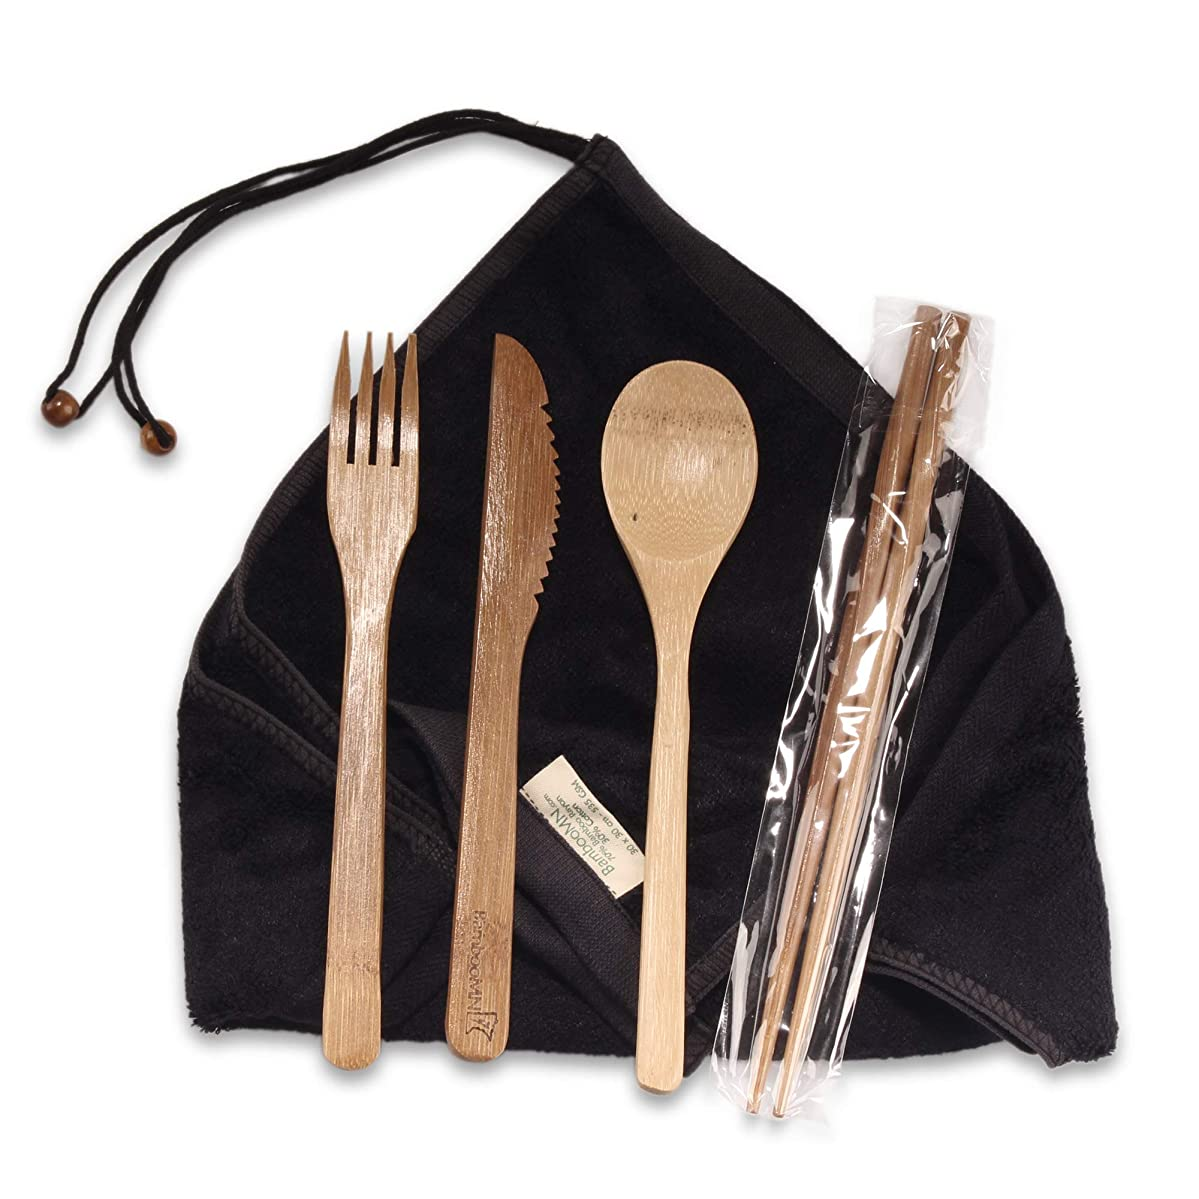 BambooMN Travel Utensils with 2 Rayon from Bamboo Washcloth Wraps - 1 Set, Black